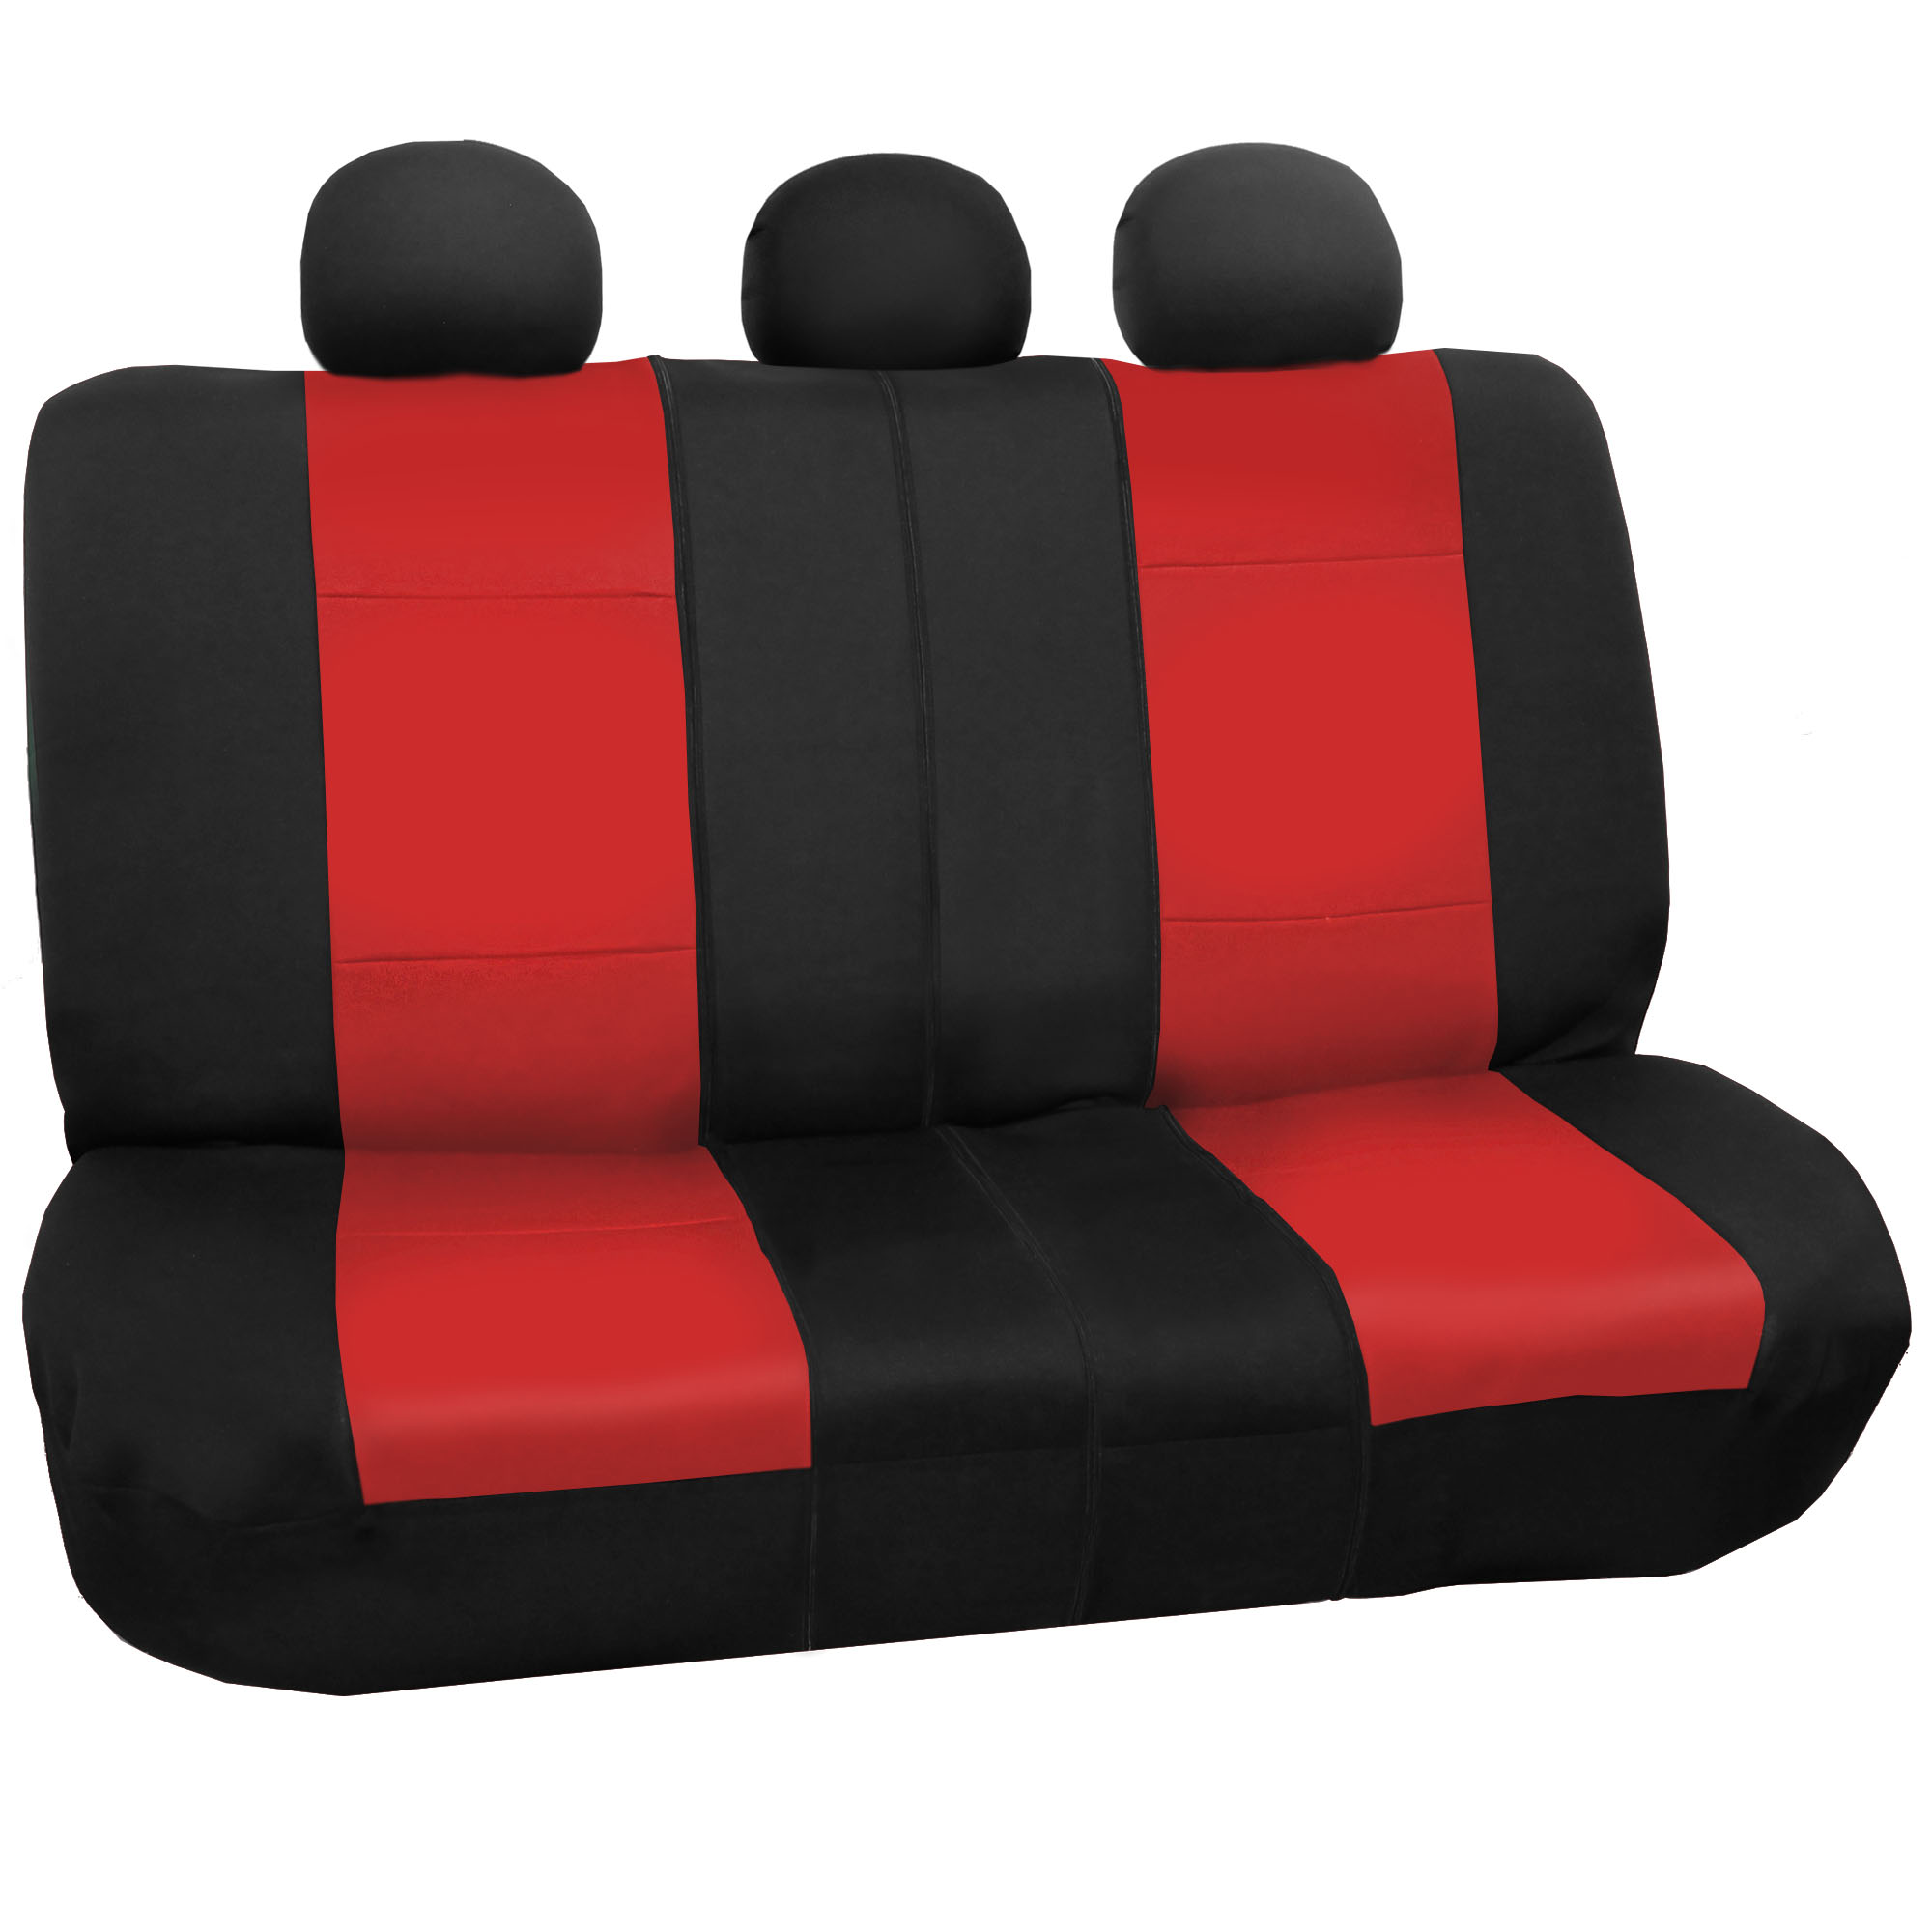 car seat cover neoprene waterproof pet proof full set cover with dash pad ebay. Black Bedroom Furniture Sets. Home Design Ideas